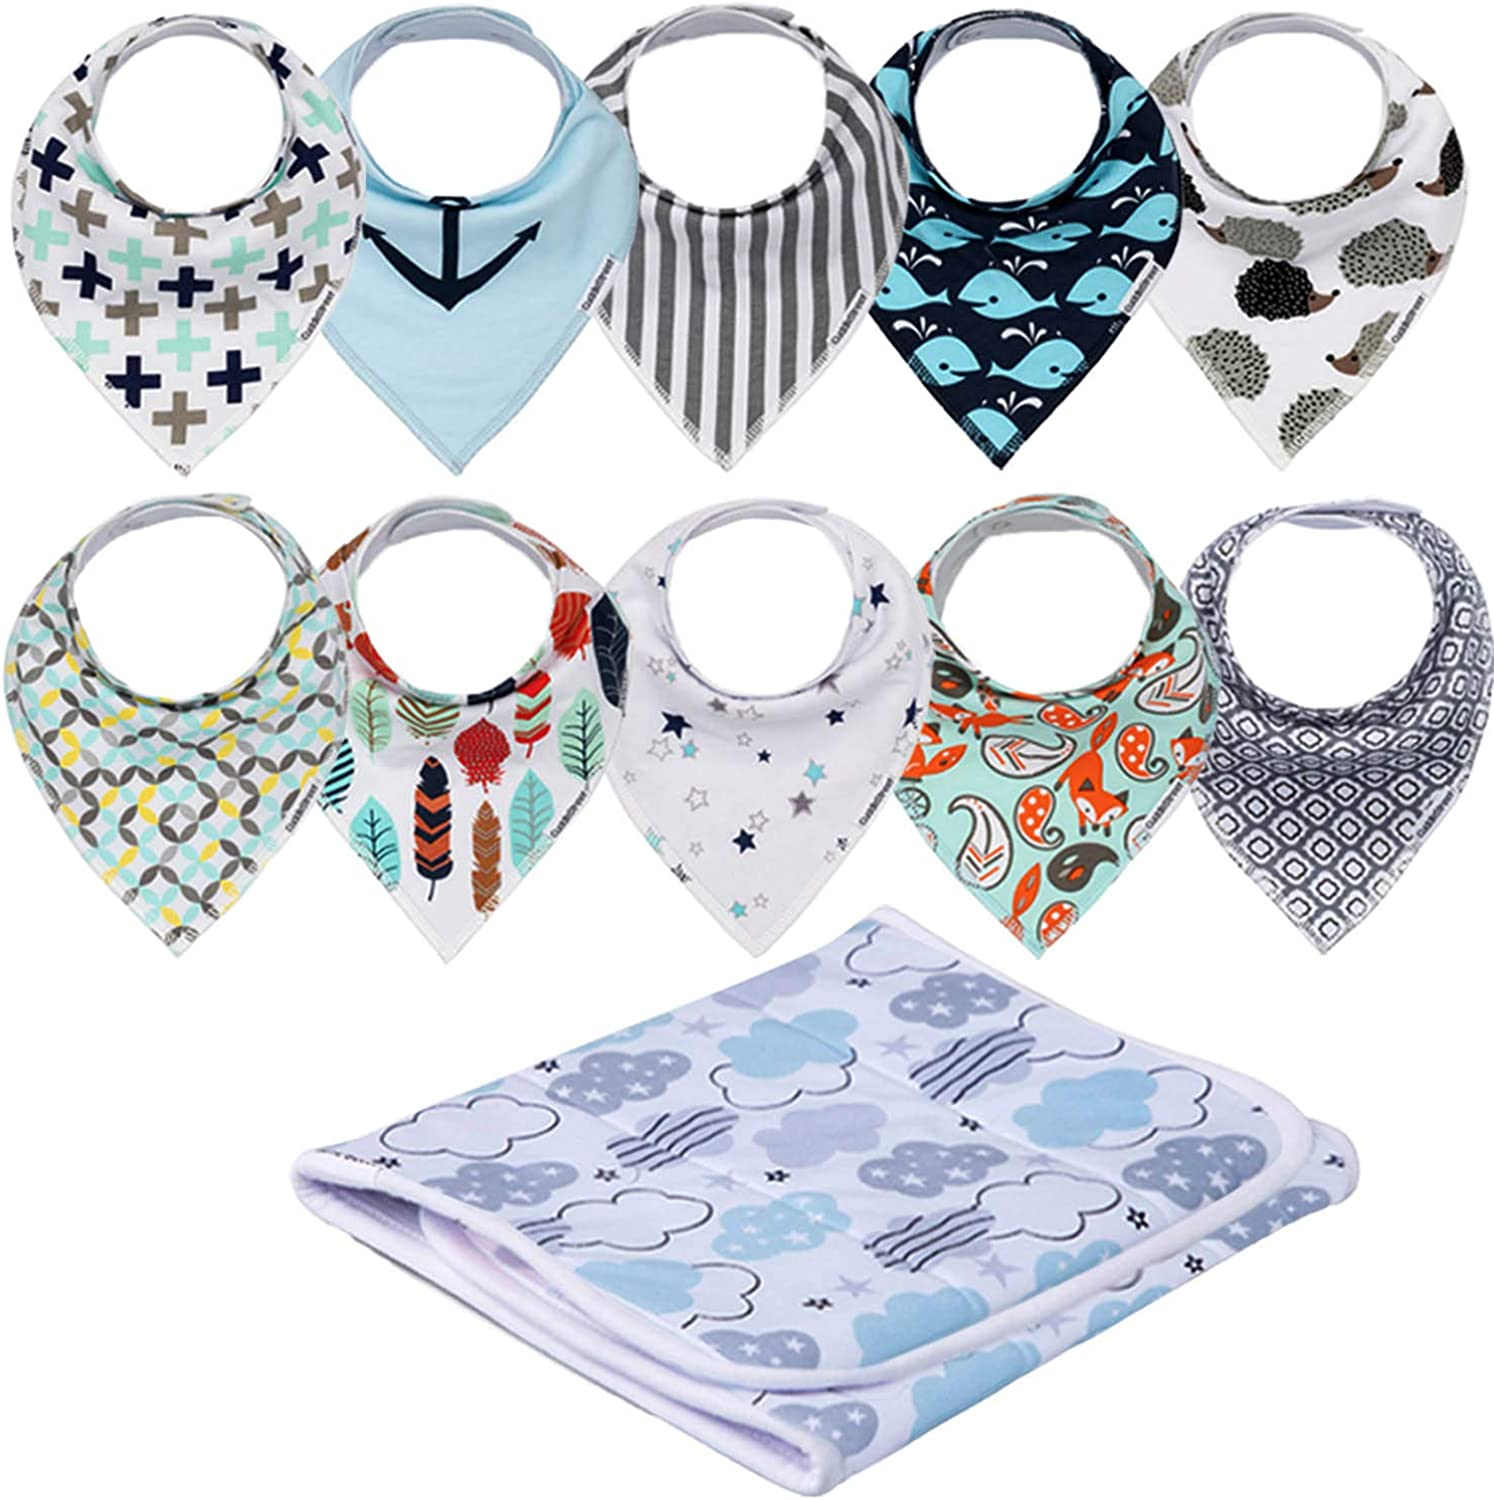 Bandana Bibs for Boys and Burp Cloth Set - 10 Pack Organic Cotton - Soft Absorbent Drool Bibs - Baby Shower Gift - Newborn and Toddler by CuddleStreet